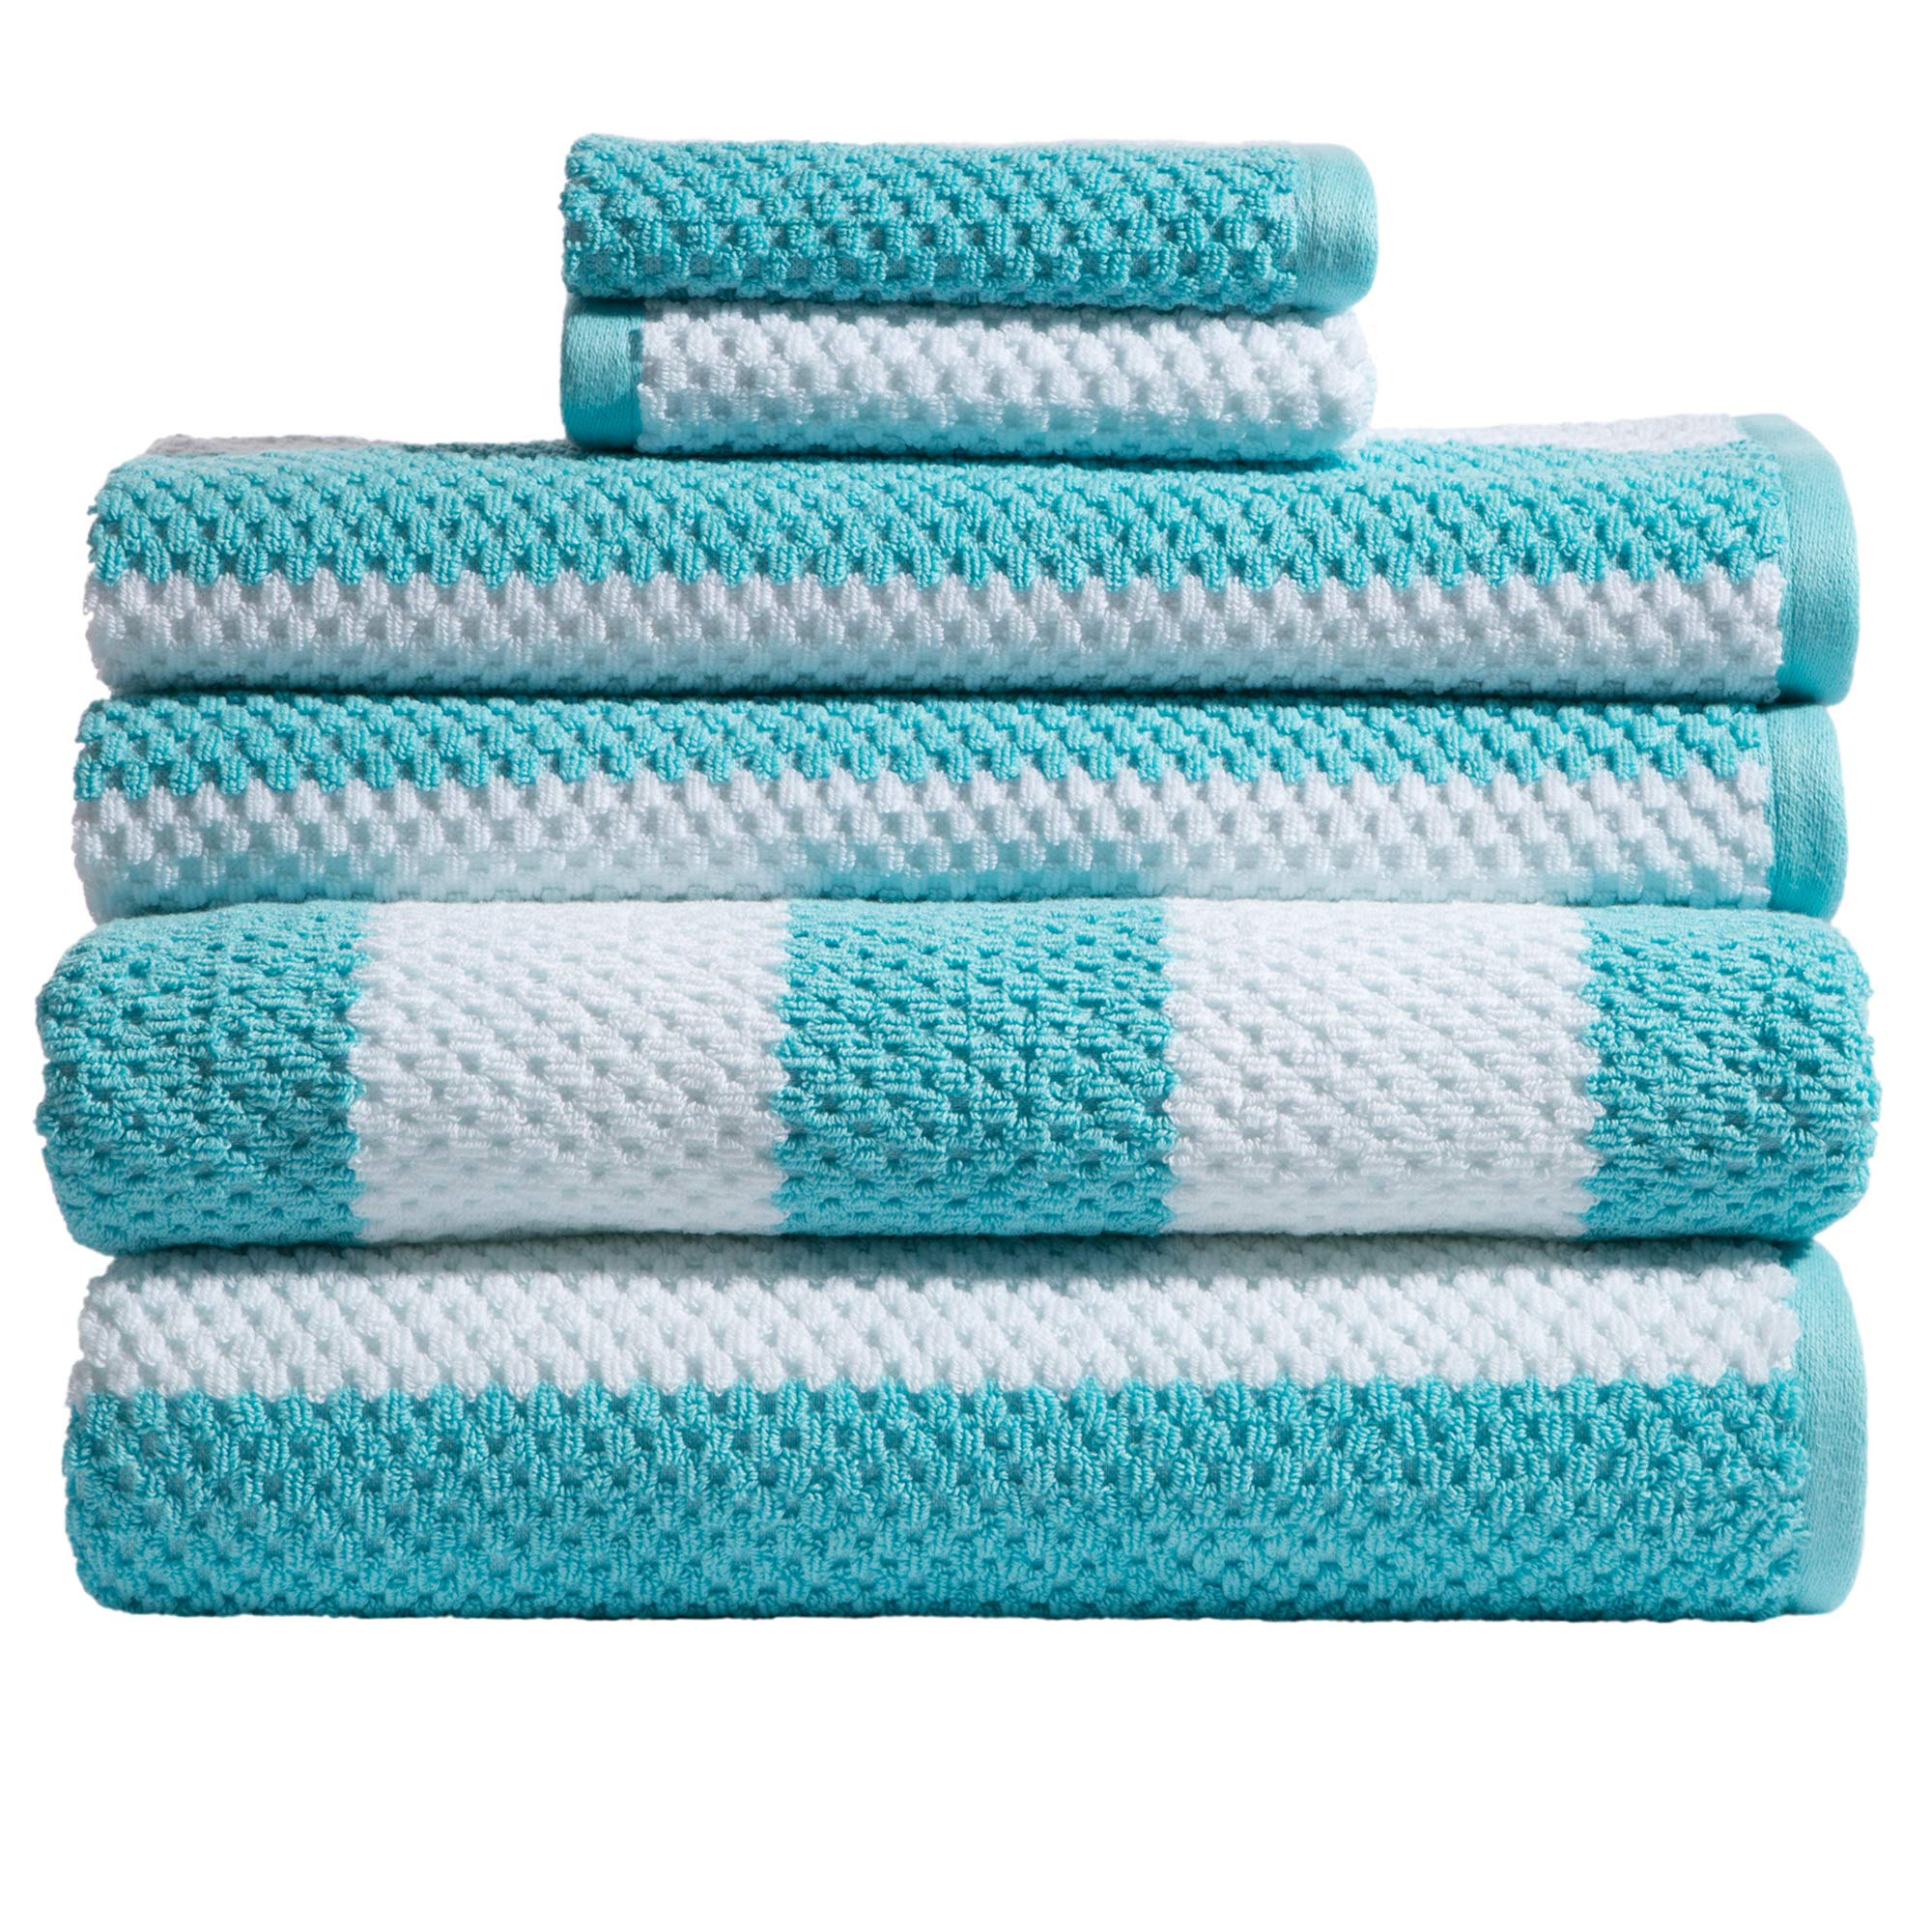 Caro Home 6PC-1075-T1-801 Stripes Rugby 6-Piece Cotton Bath Towel Set